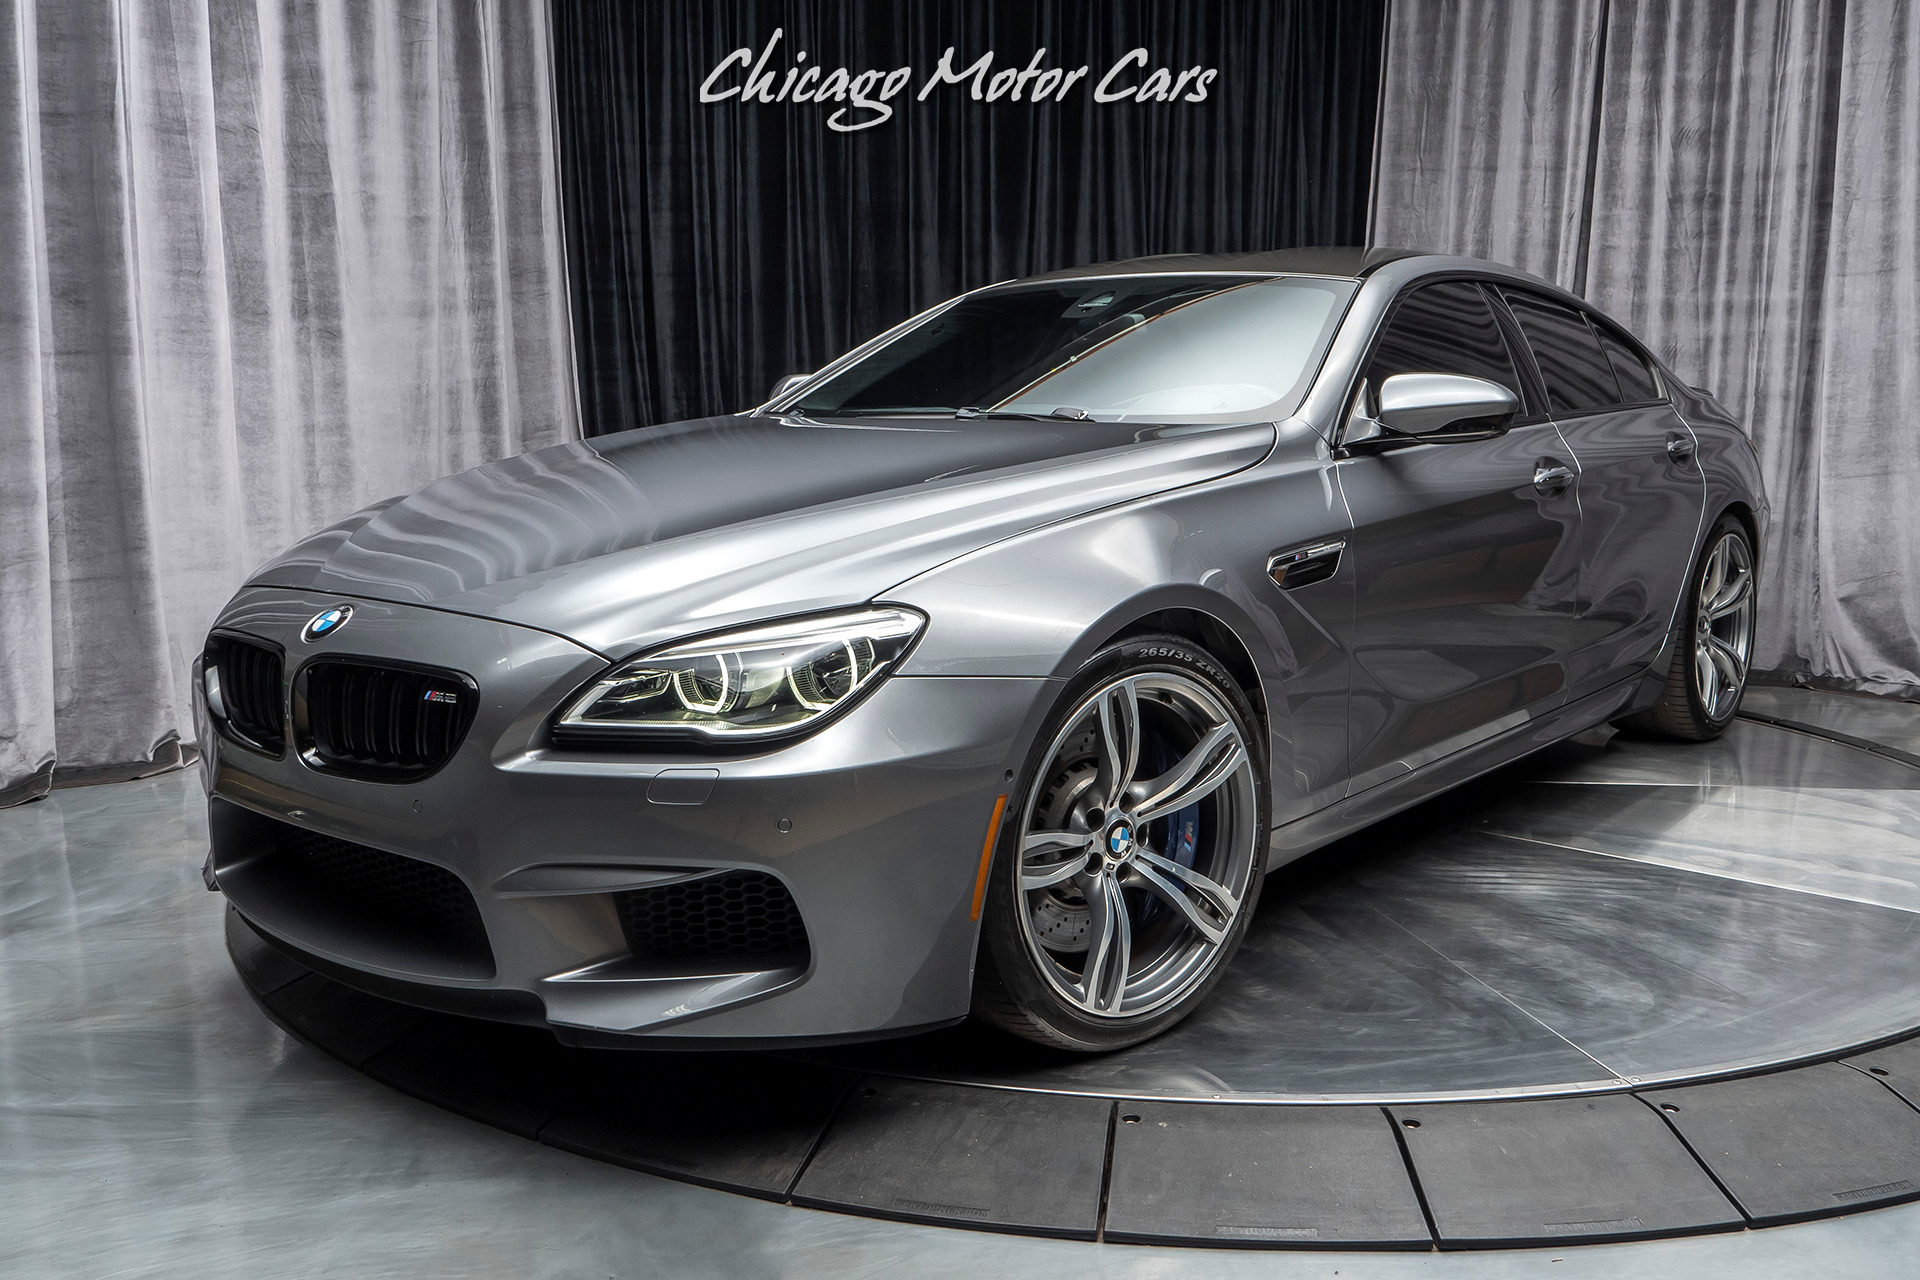 Used 2016 Bmw M6 Gran Coupe Msrp 134k Competition Package For Sale Special Pricing Chicago Motor Cars Stock 16175d